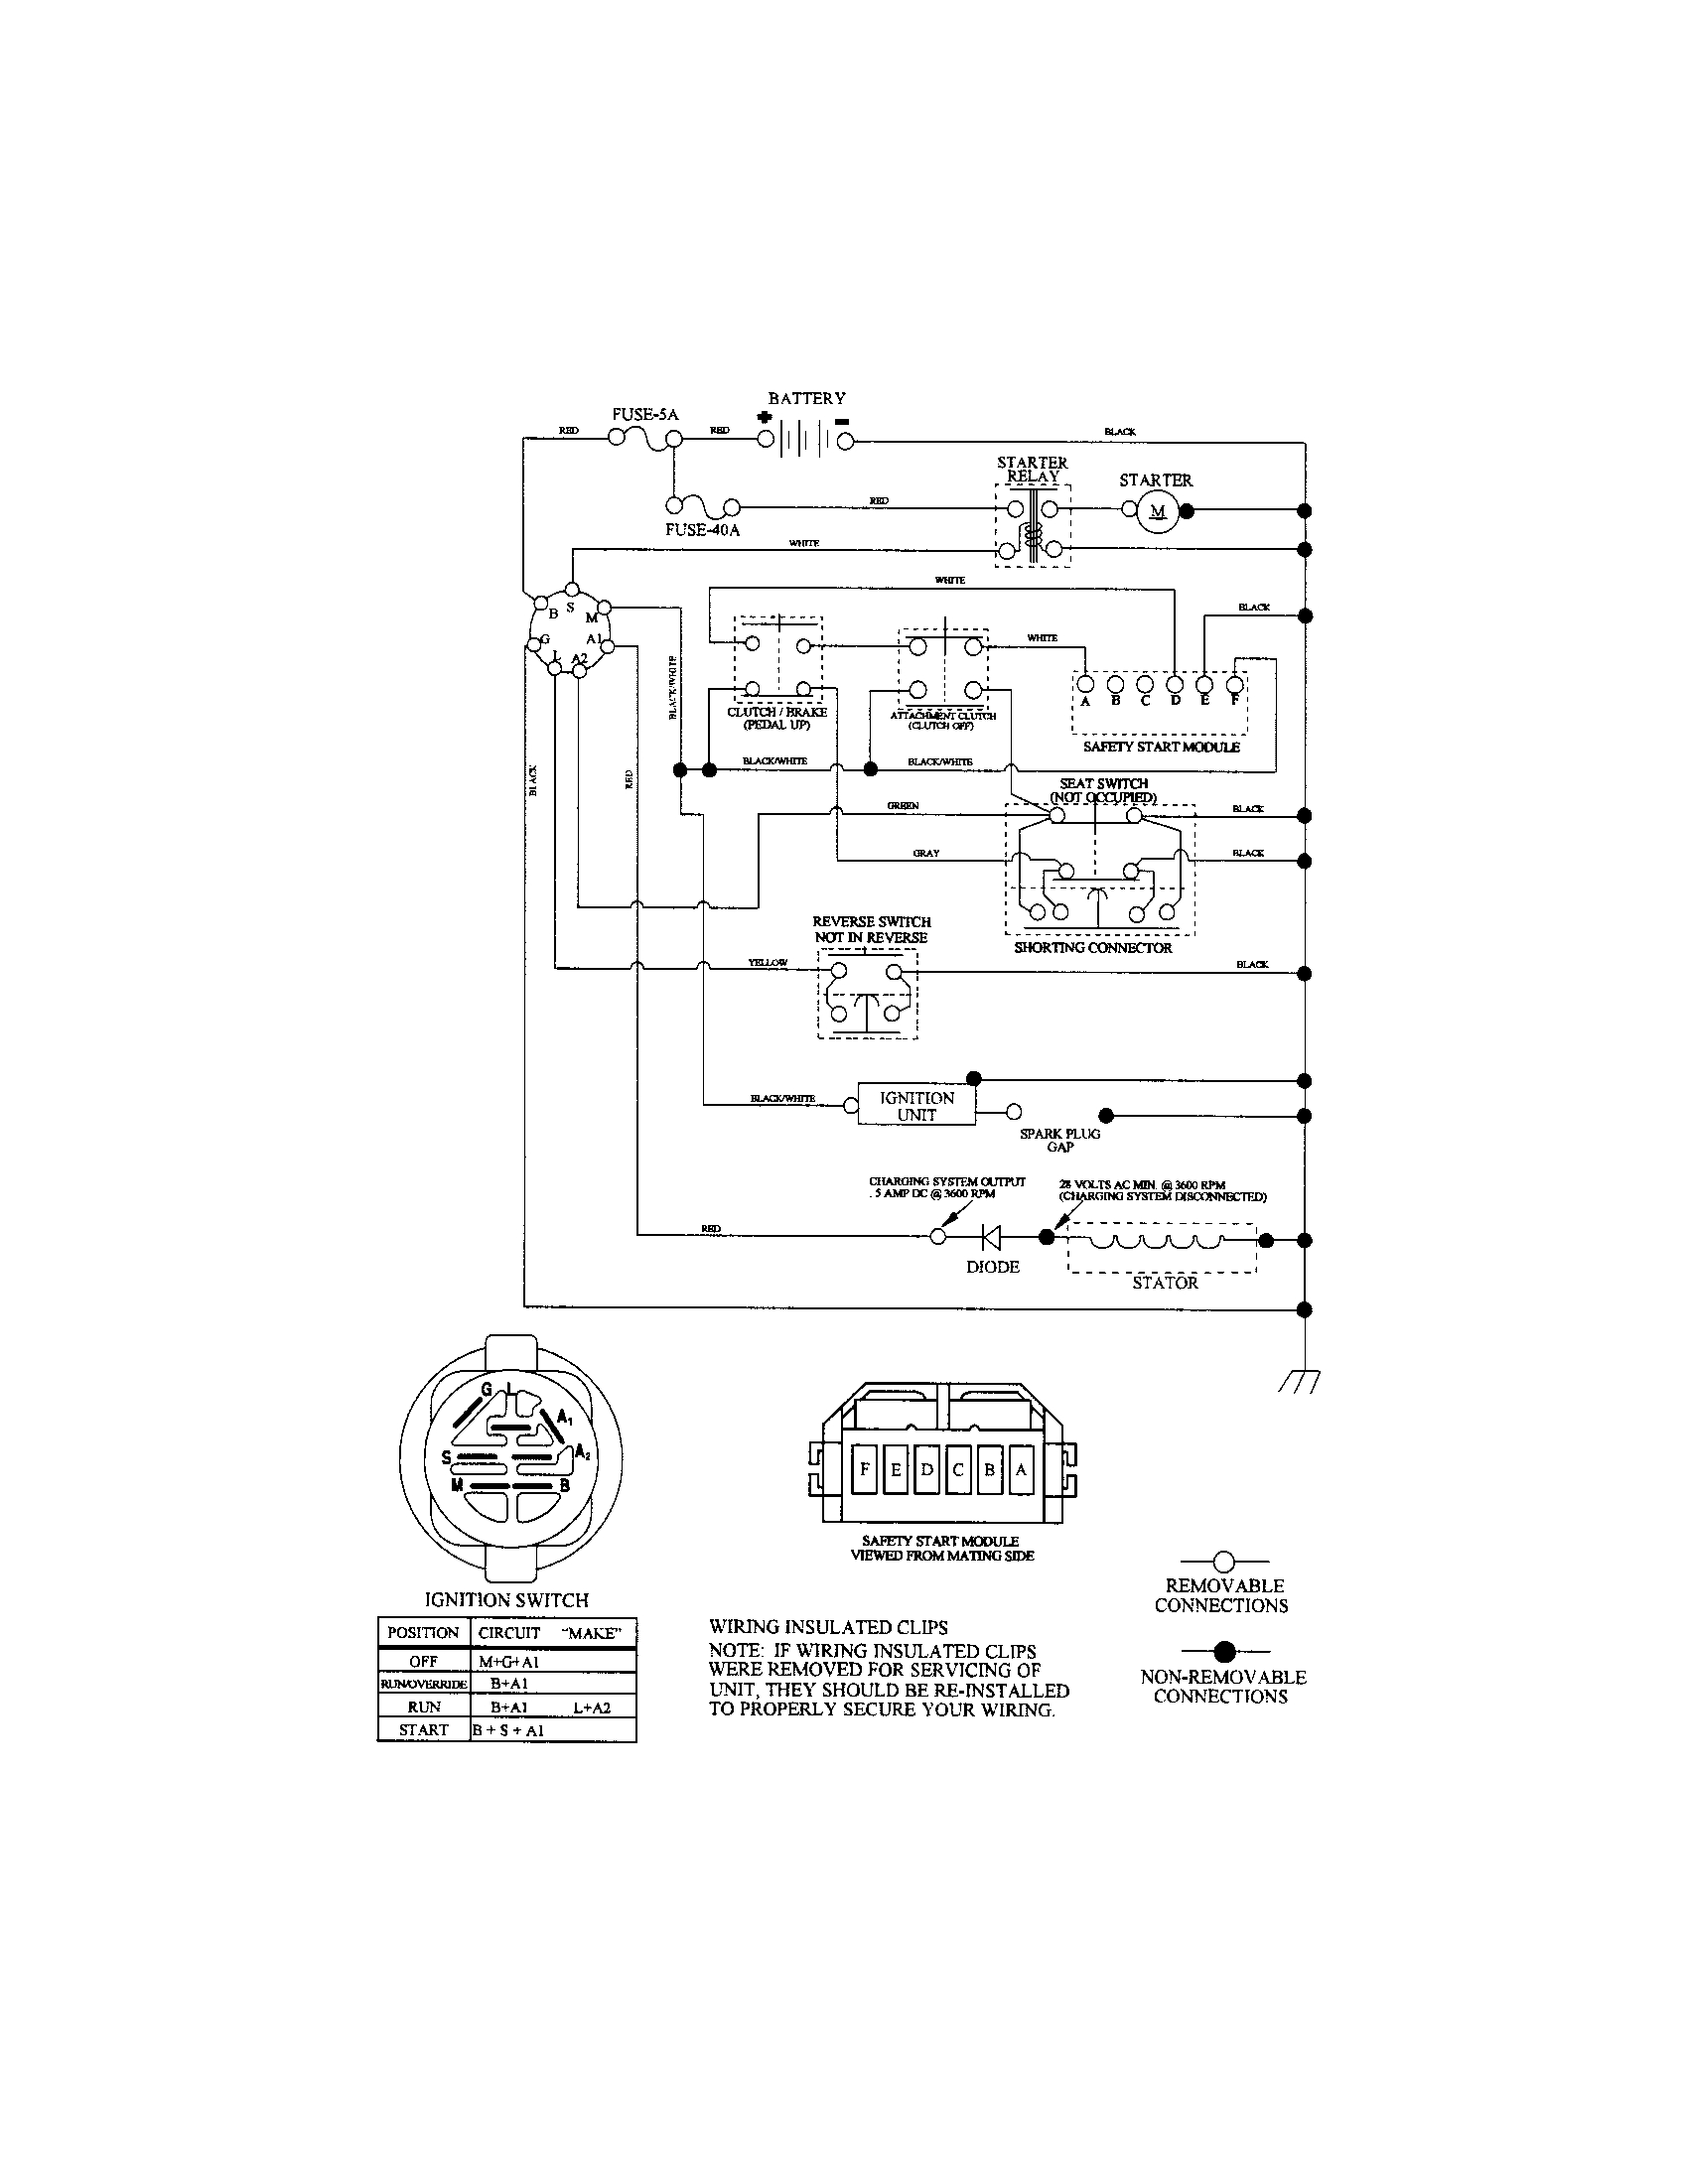 hight resolution of craftsman model 917 wiring diagram wiring diagram name 917 271021 craftsman lawn mower wire diagram